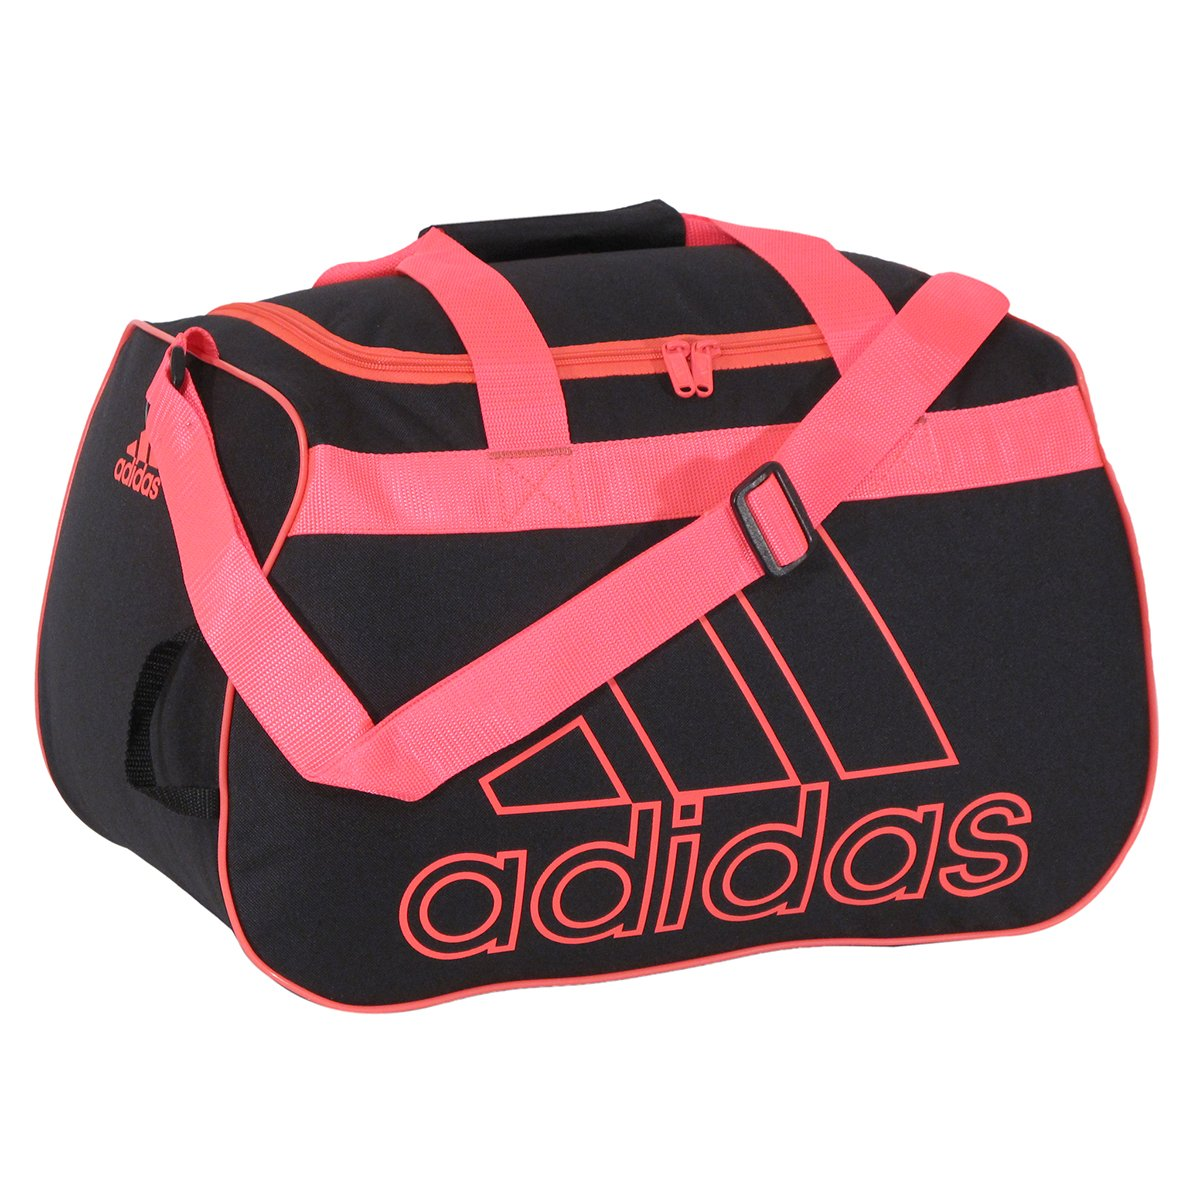 adidas Diablo Small Duffel Bag, Black/Pink Zest, One Size